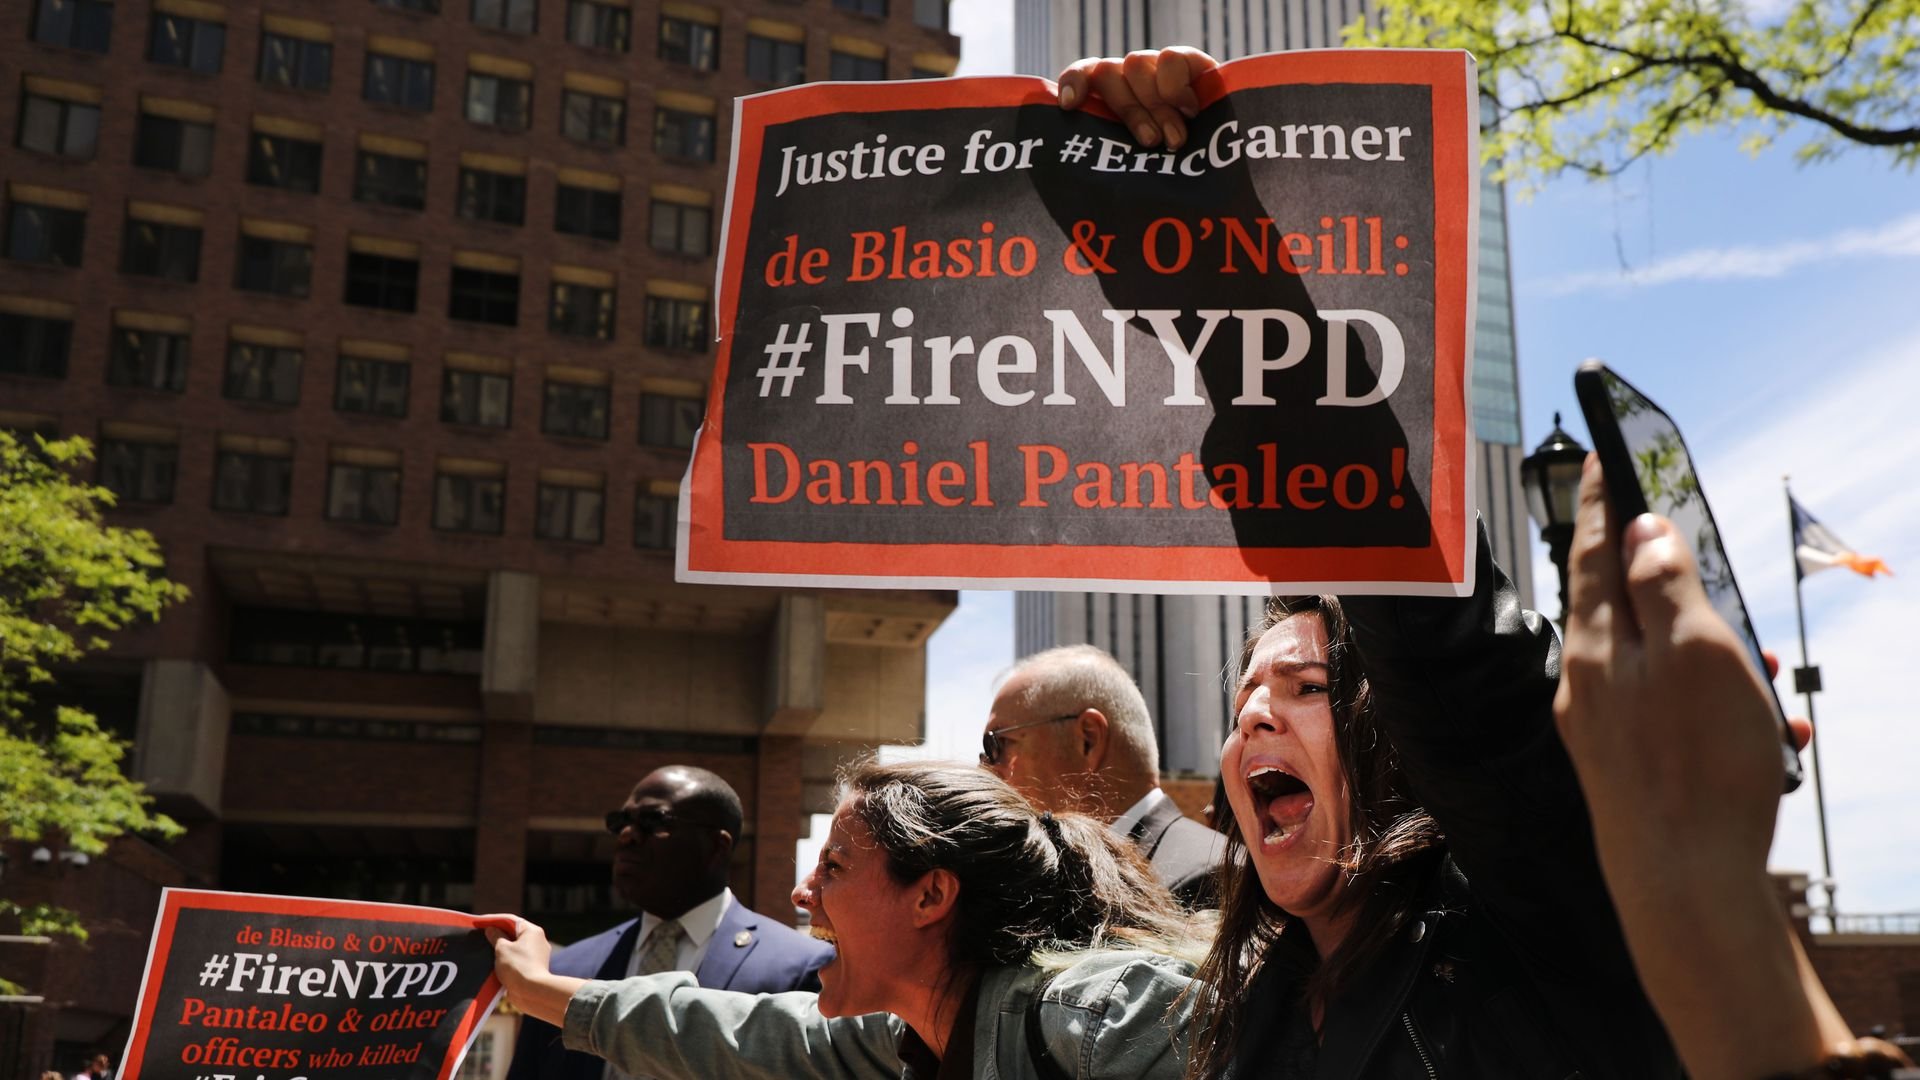 Protesters calling for officer Daniel Pantaleo to be fired following Eric Garner's death